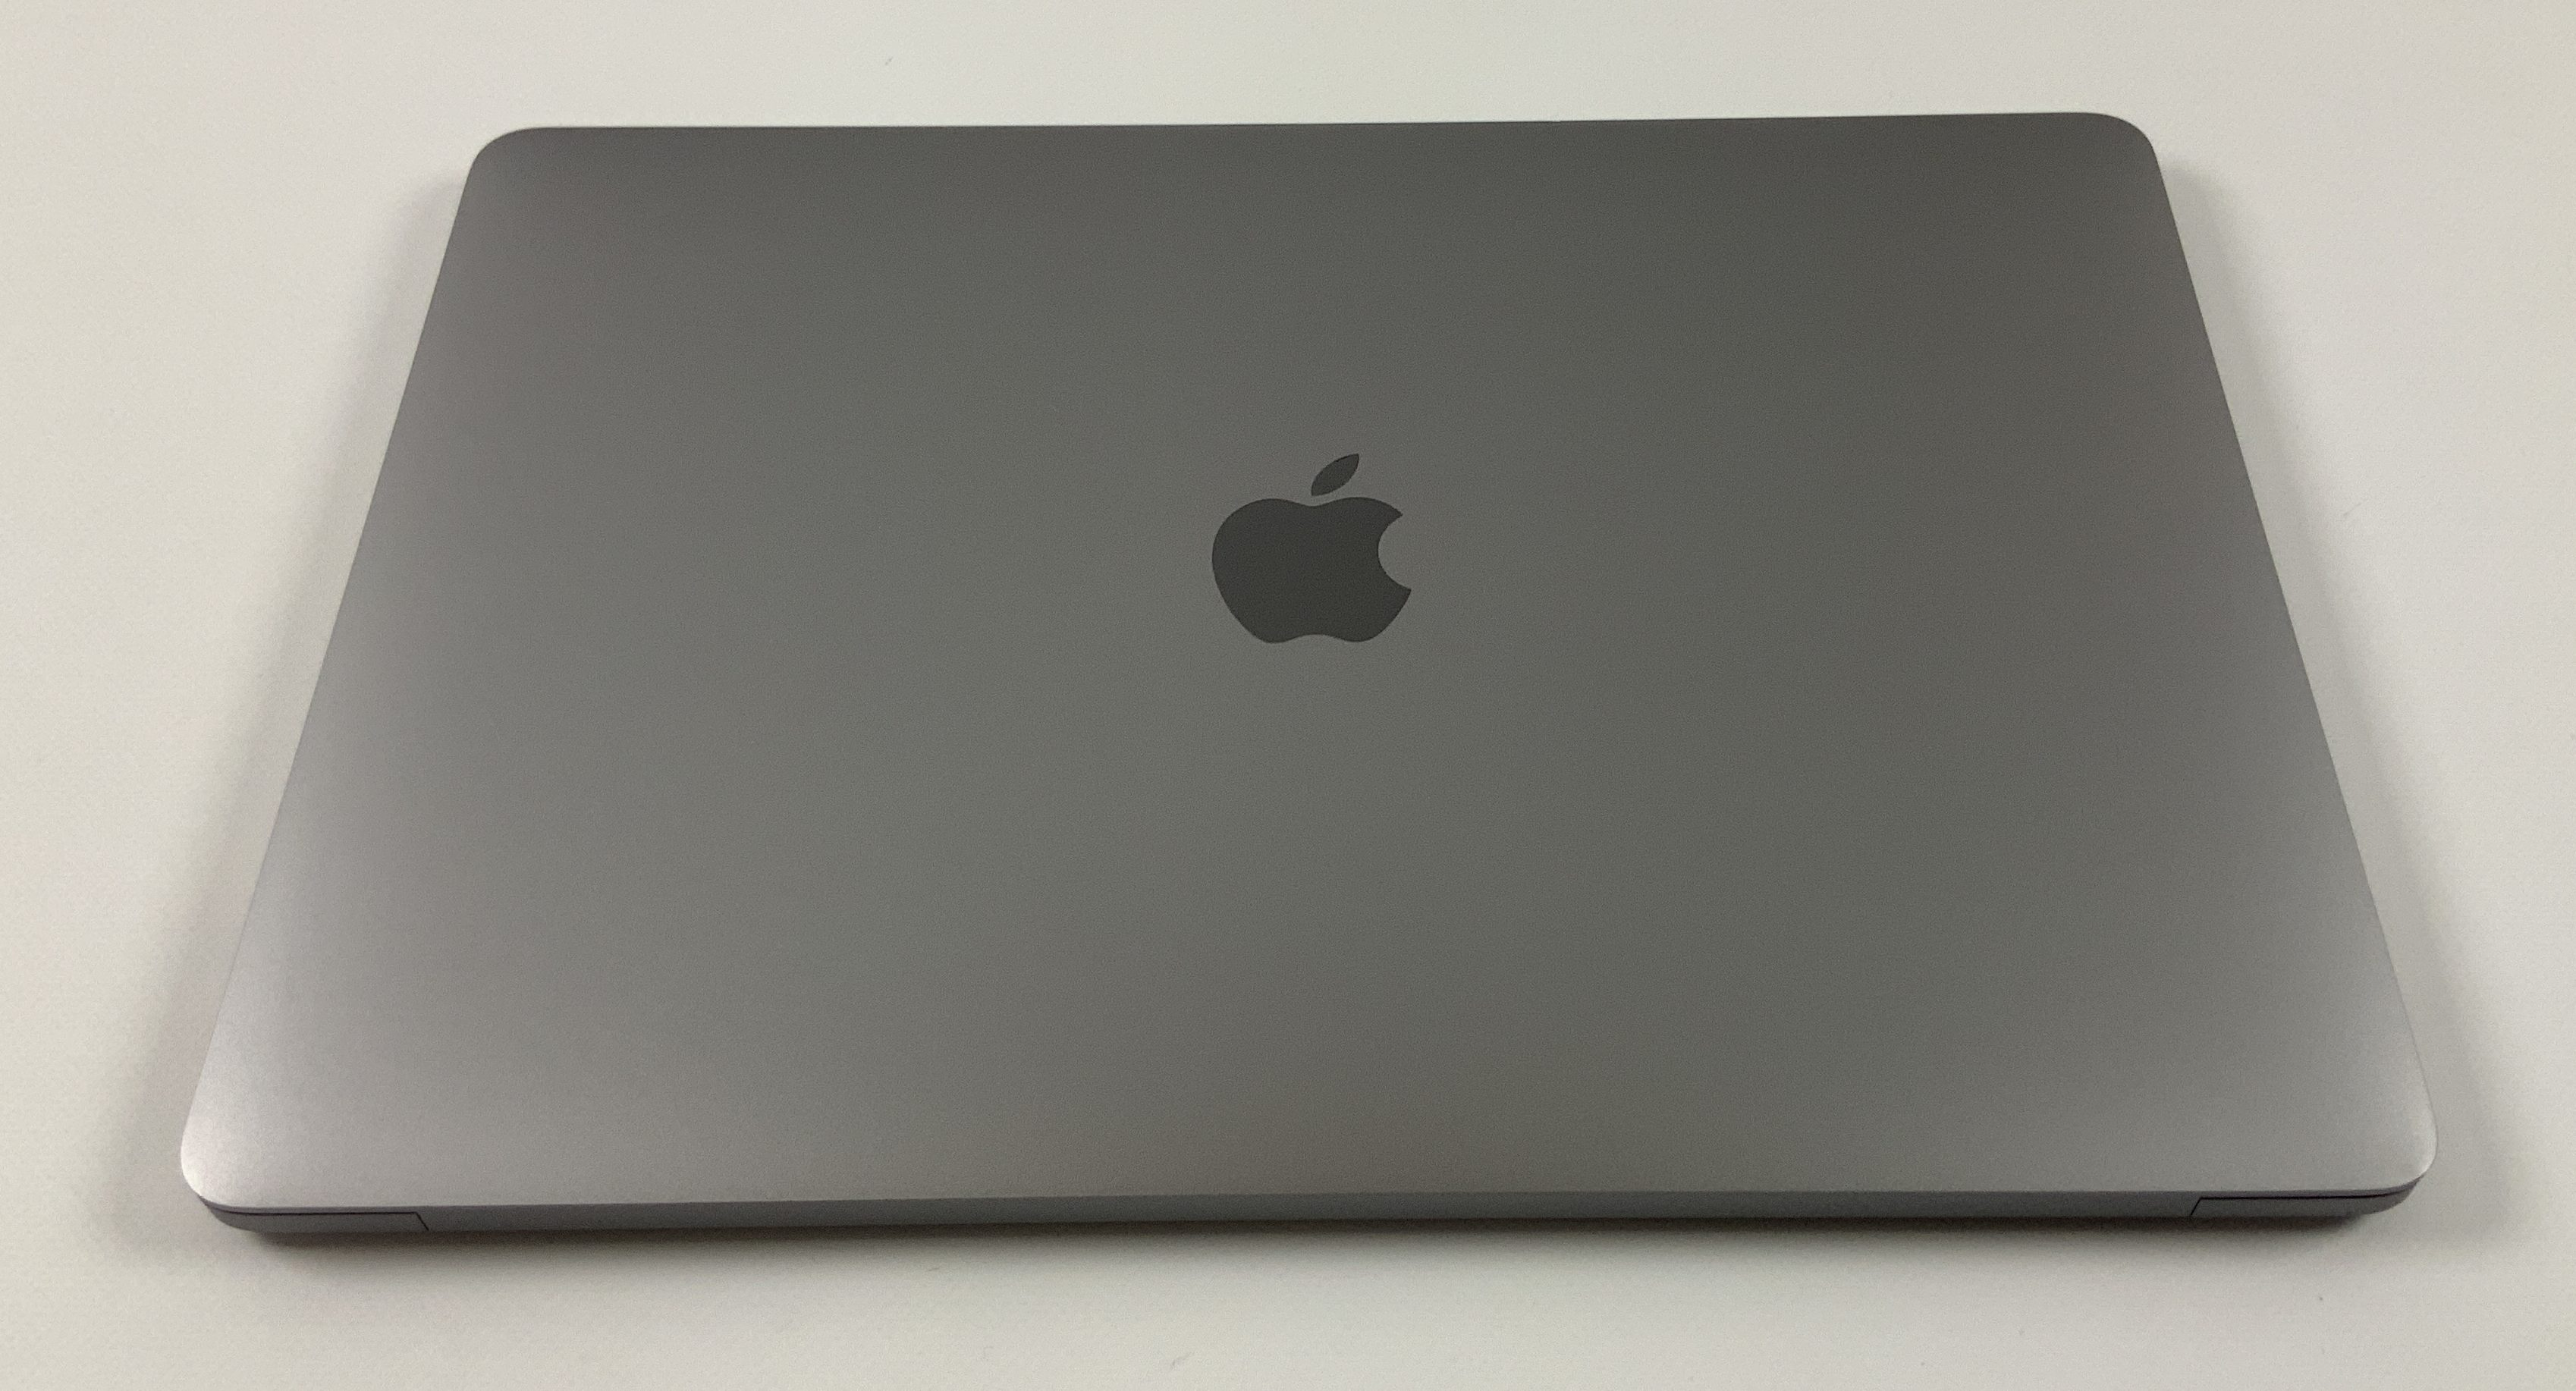 "MacBook Pro 13"" 4TBT Mid 2017 (Intel Core i5 3.1 GHz 16 GB RAM 256 GB SSD), Space Gray, Intel Core i5 3.1 GHz, 16 GB RAM, 256 GB SSD, Kuva 2"